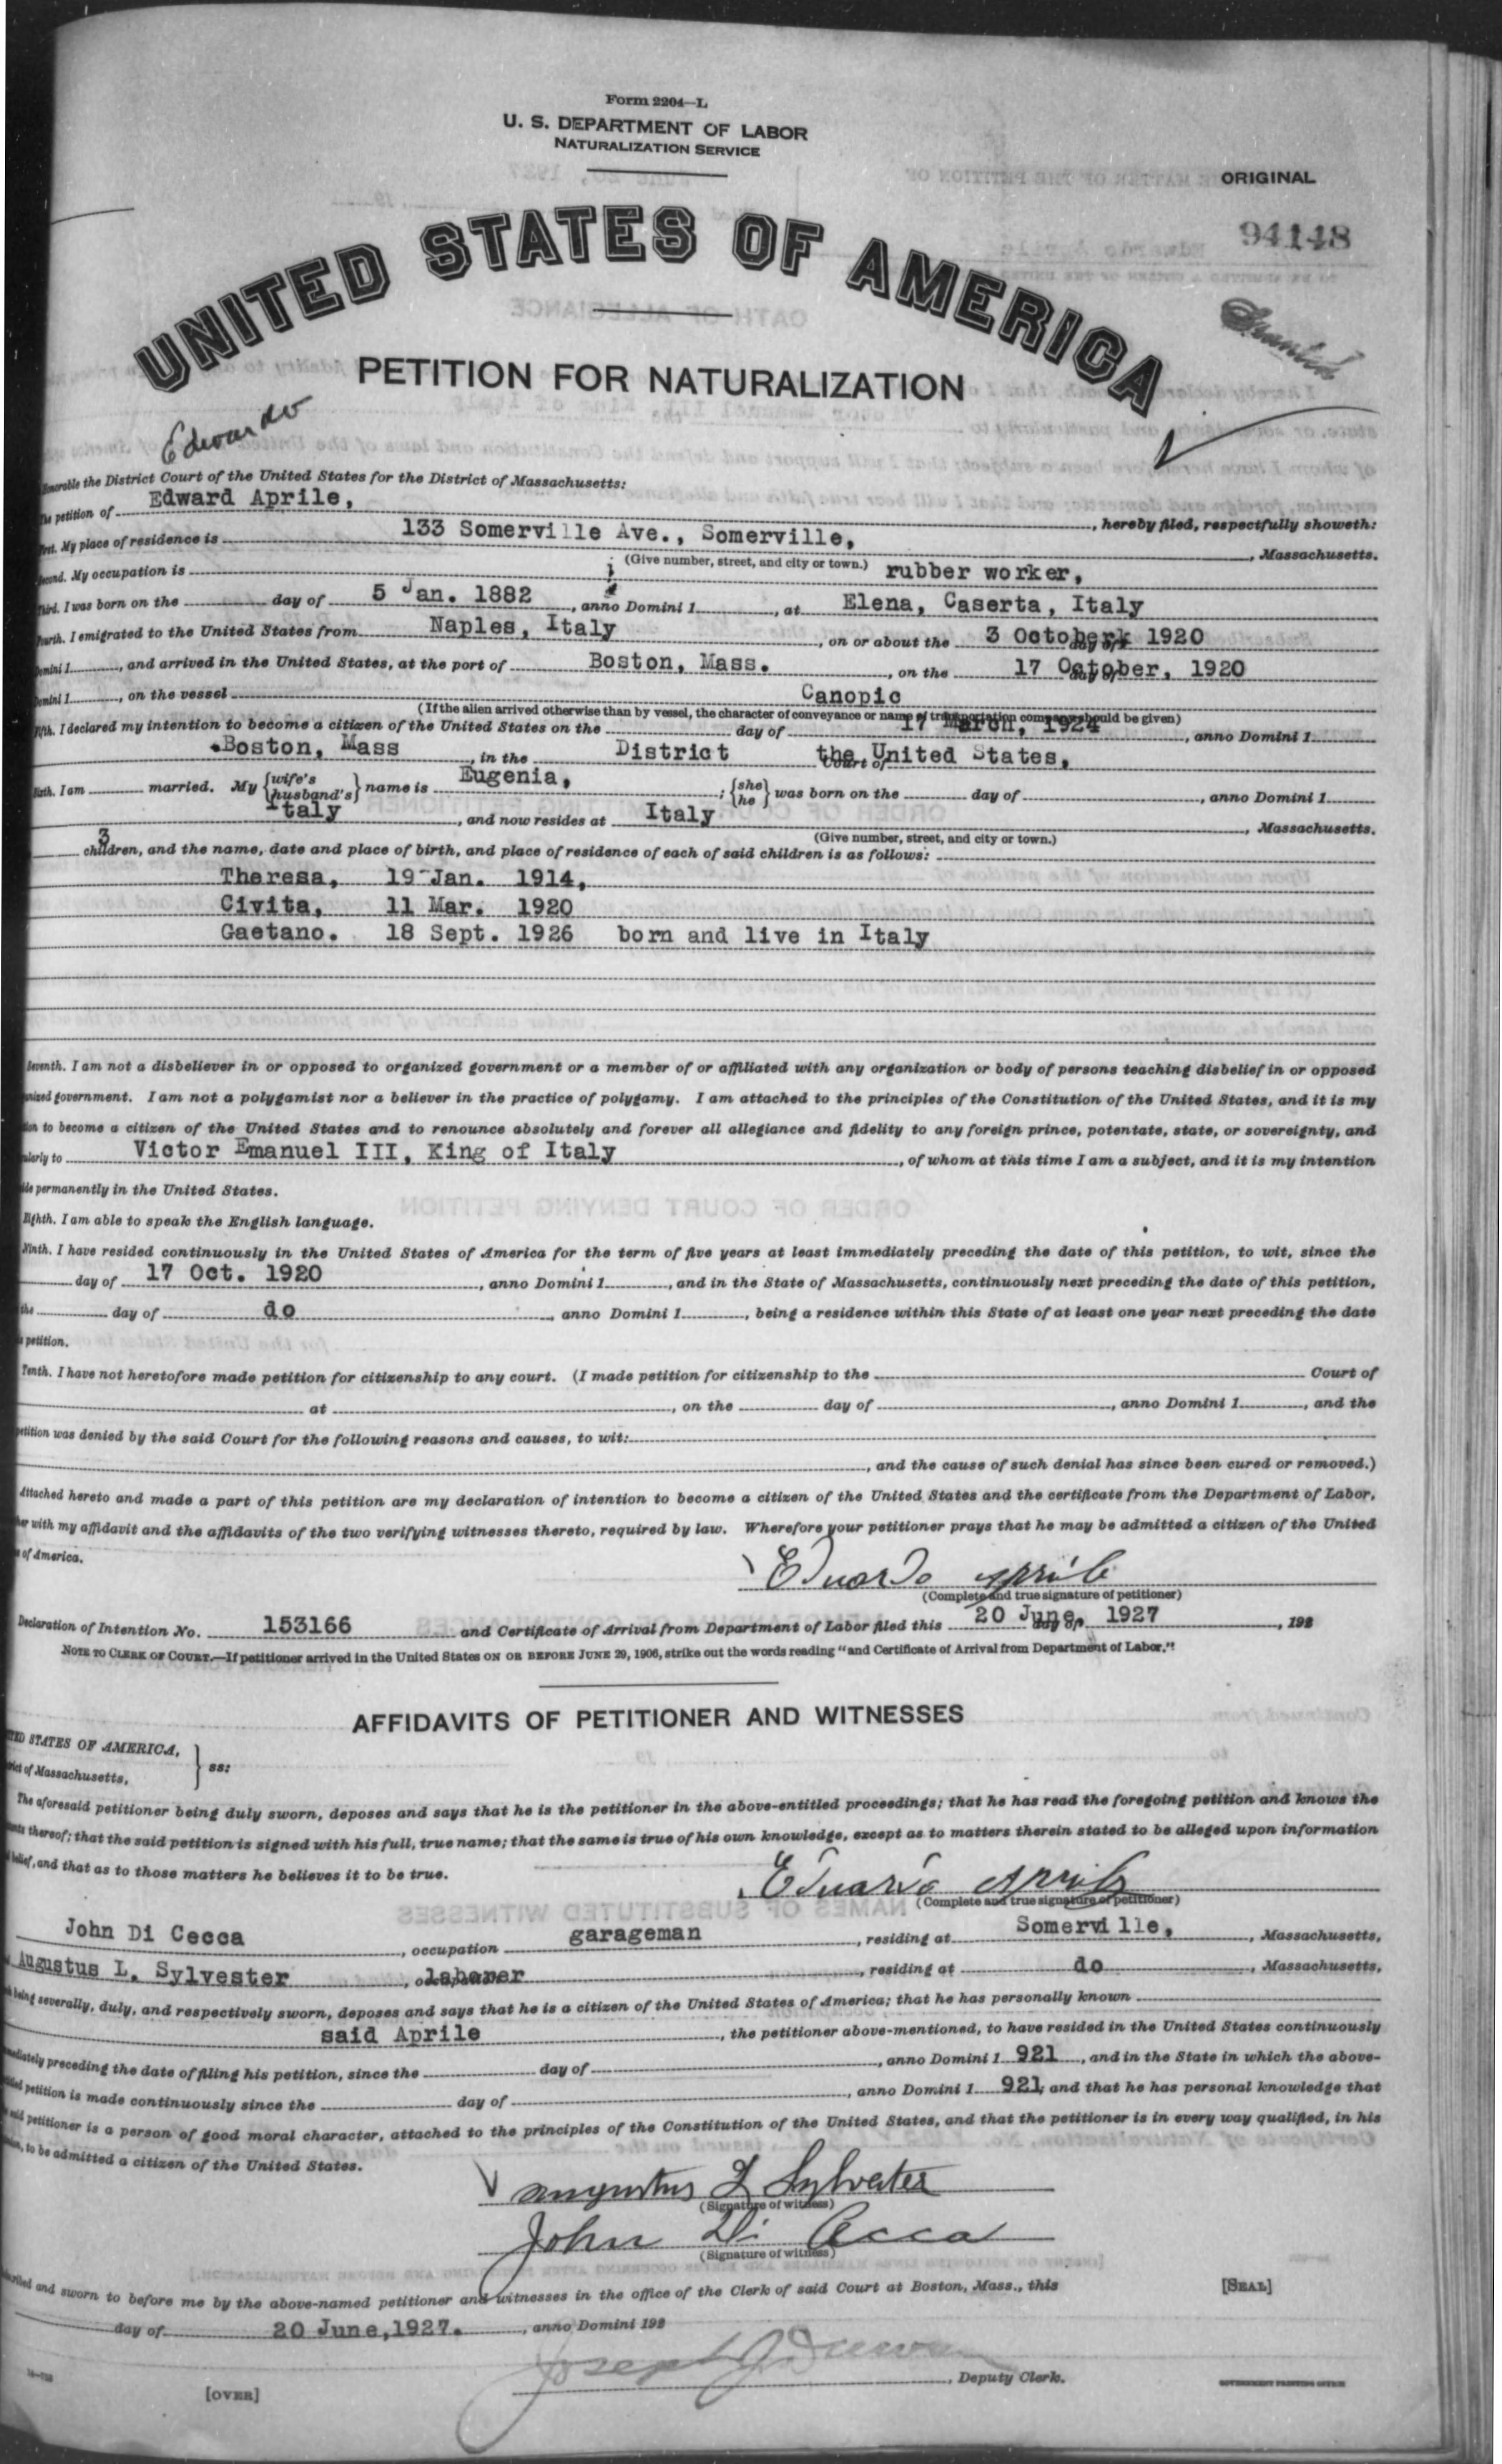 Petition for Naturalization of Edward Aprile